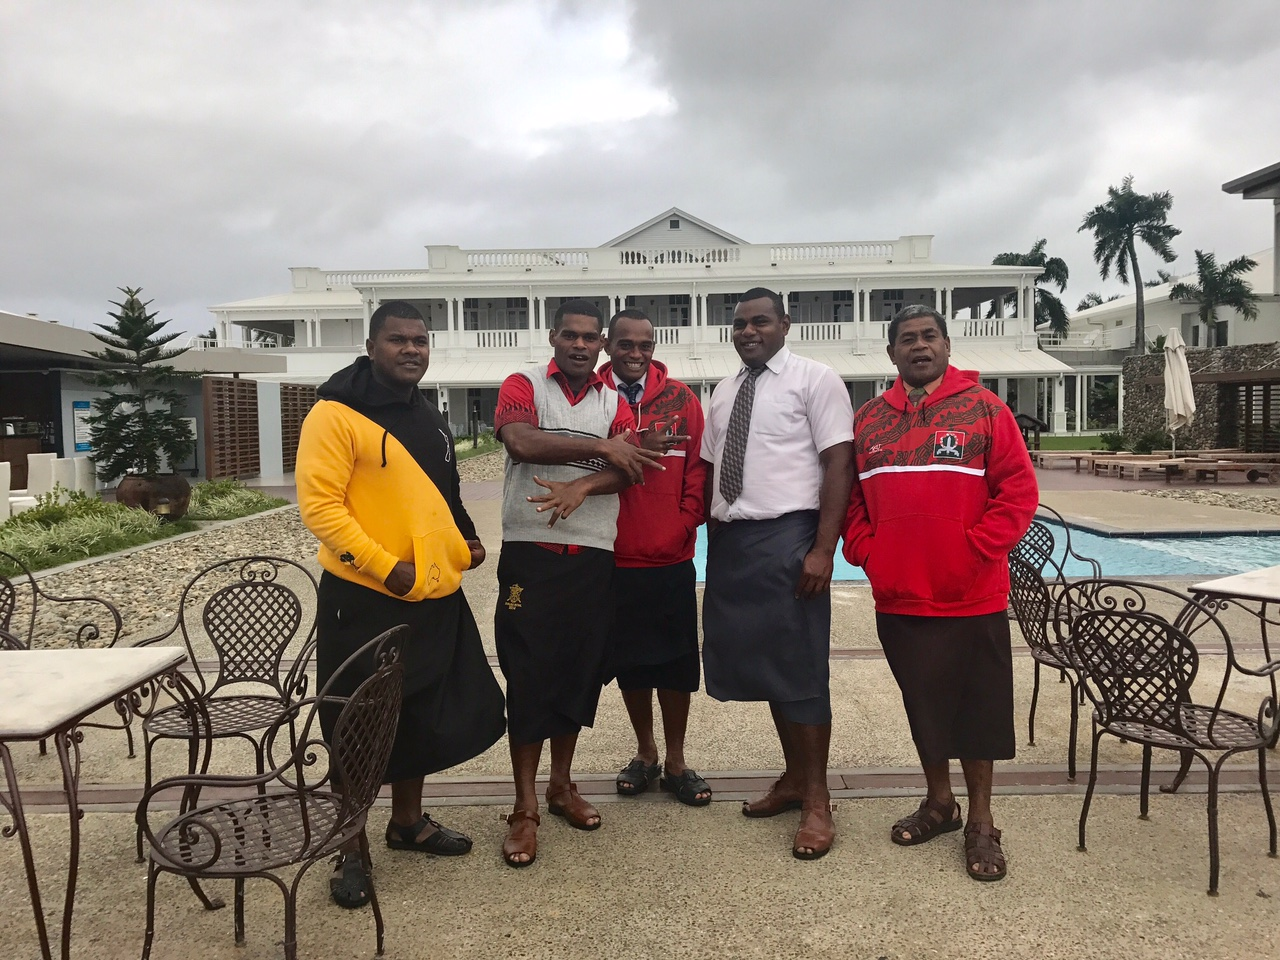 These Fijian military men were telling me how they wanted to join Uncle Sam. The skirts they are wearing are very typical in Fiji and are called sulus.